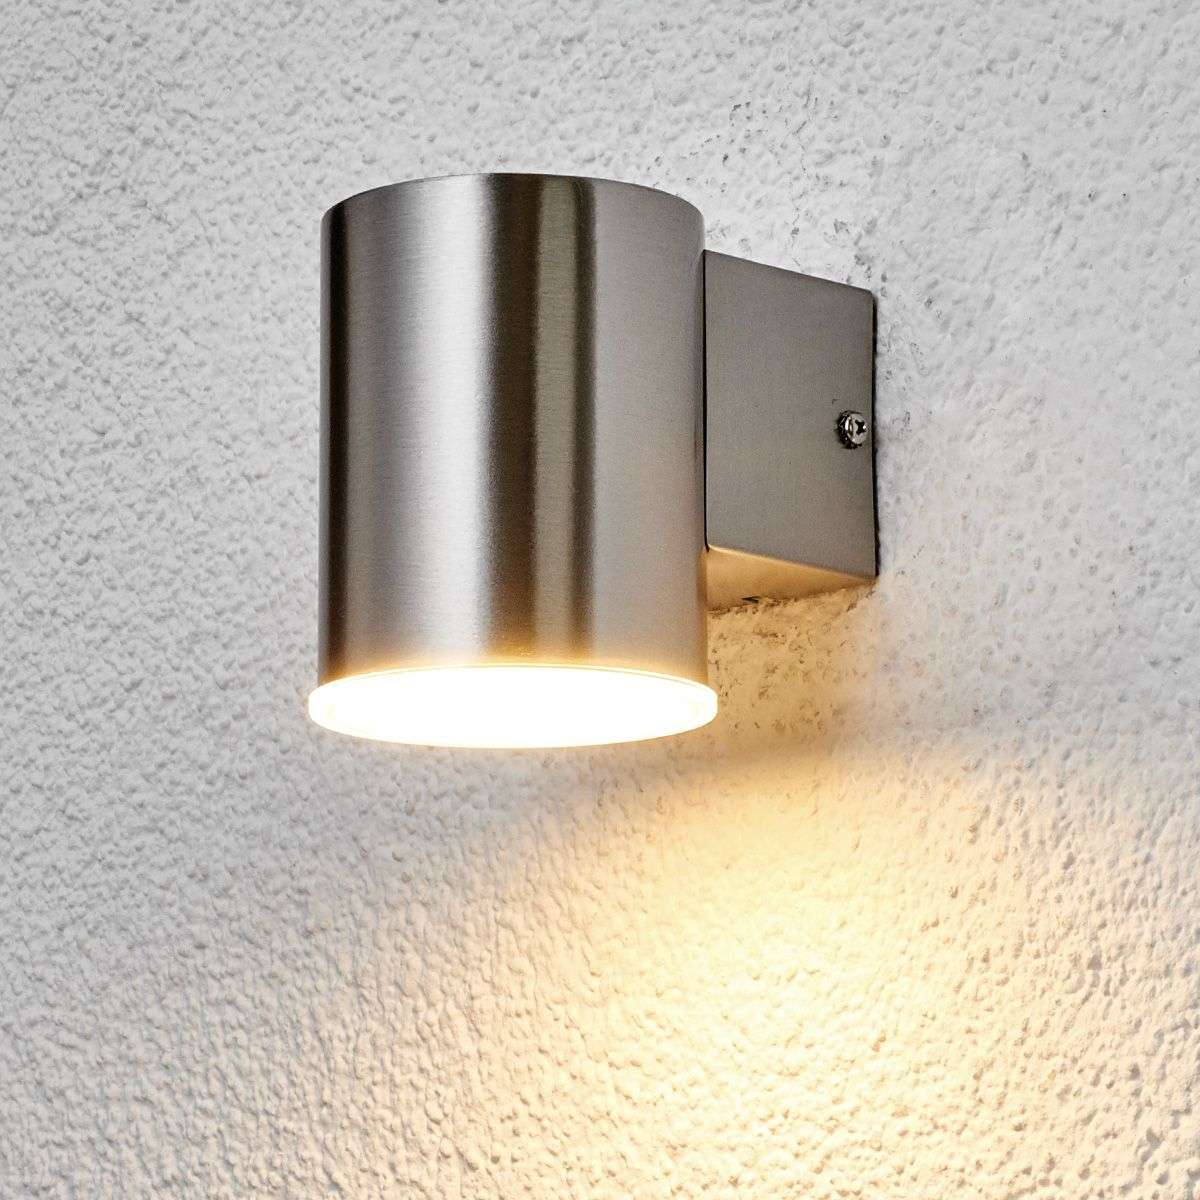 Typo Led Wall Light: Round Morena LED Stainless Steel Wall Light